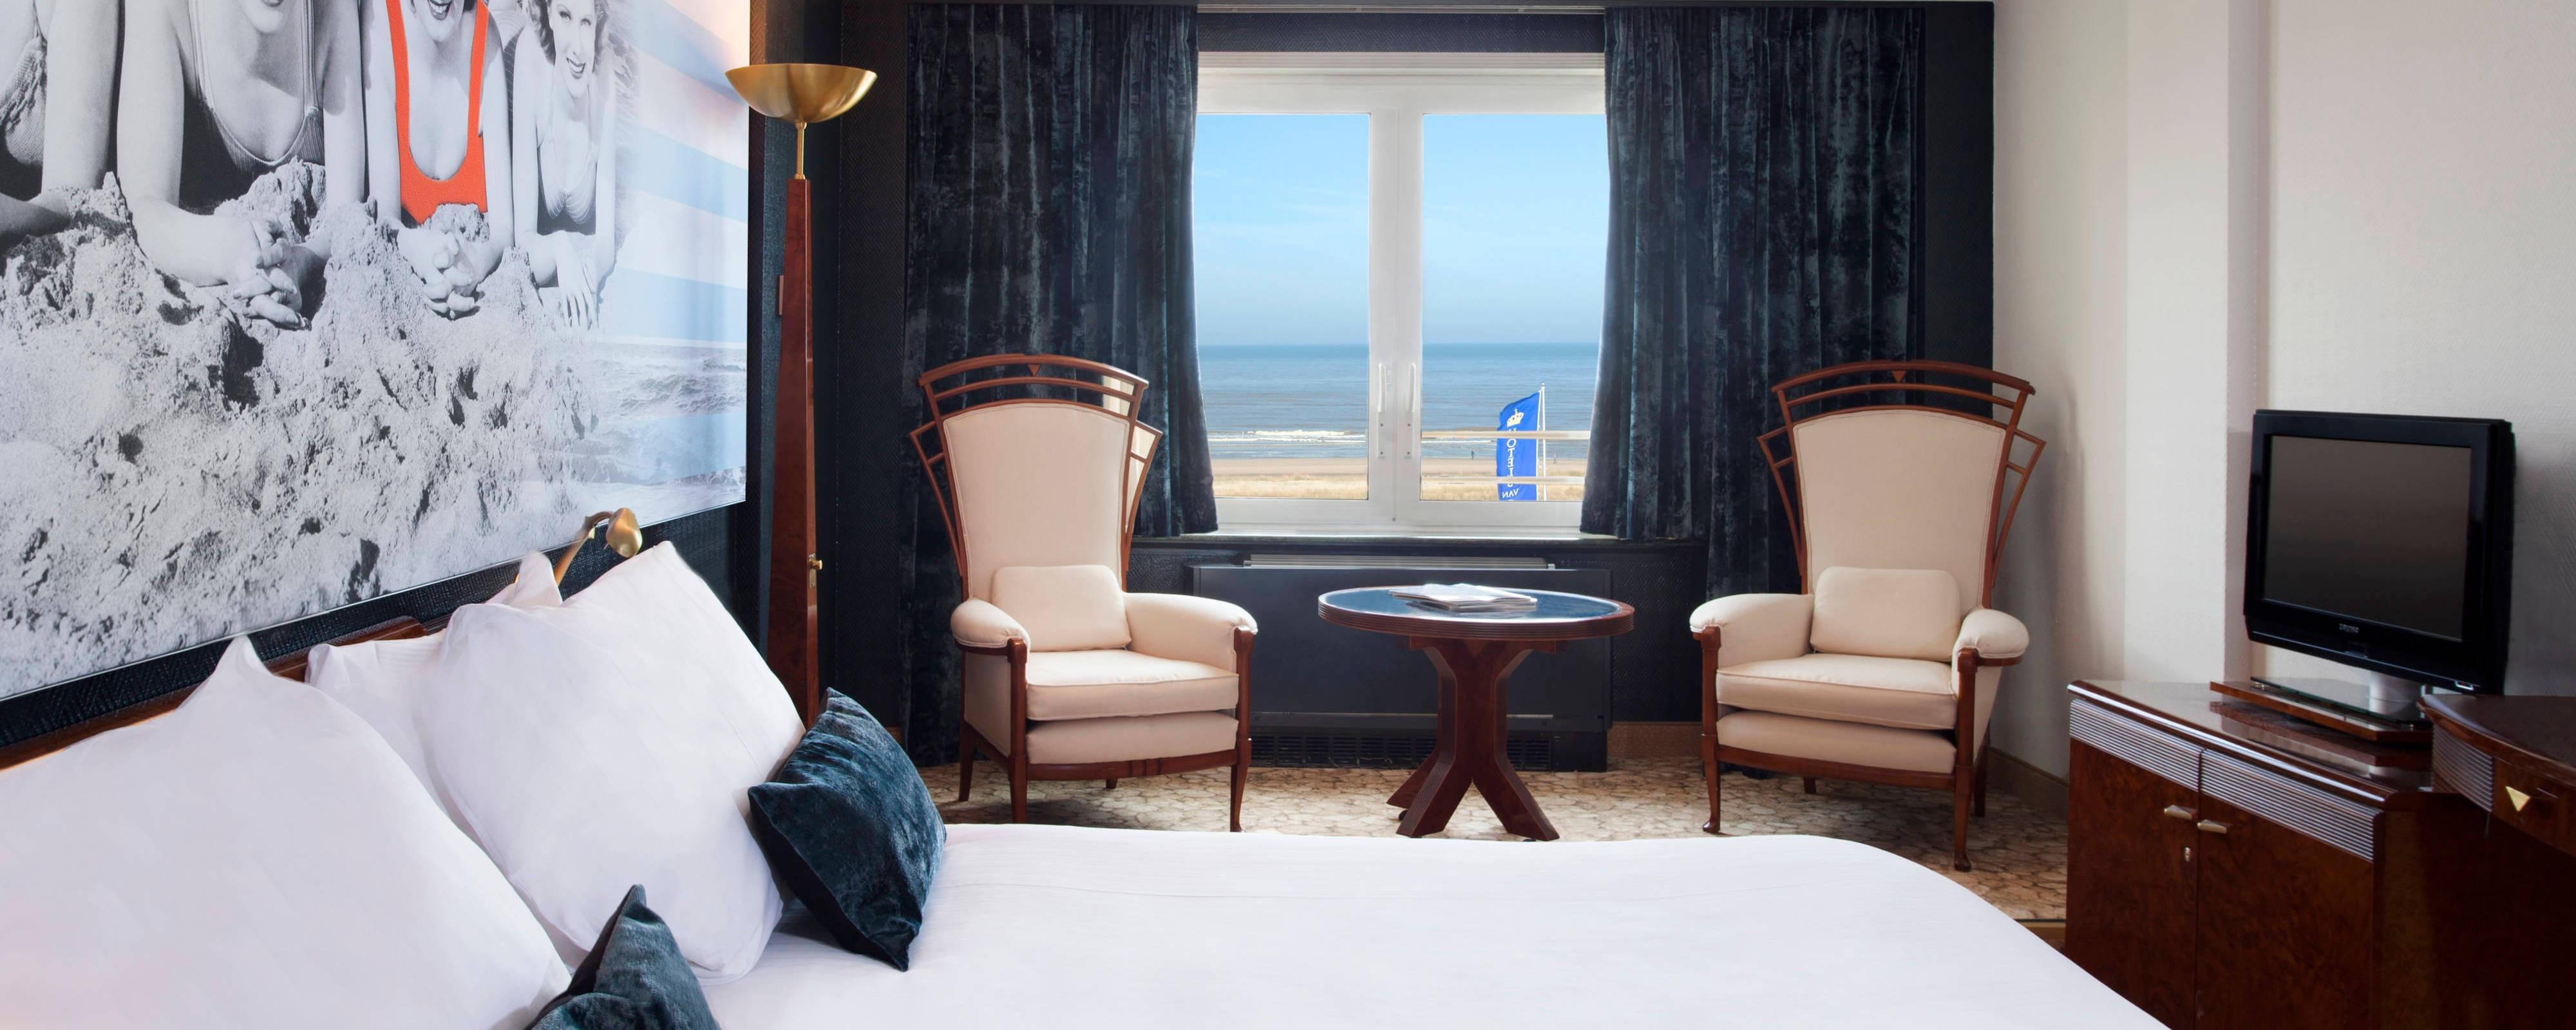 Hotel van Oranje - King Guest Room - Sea View